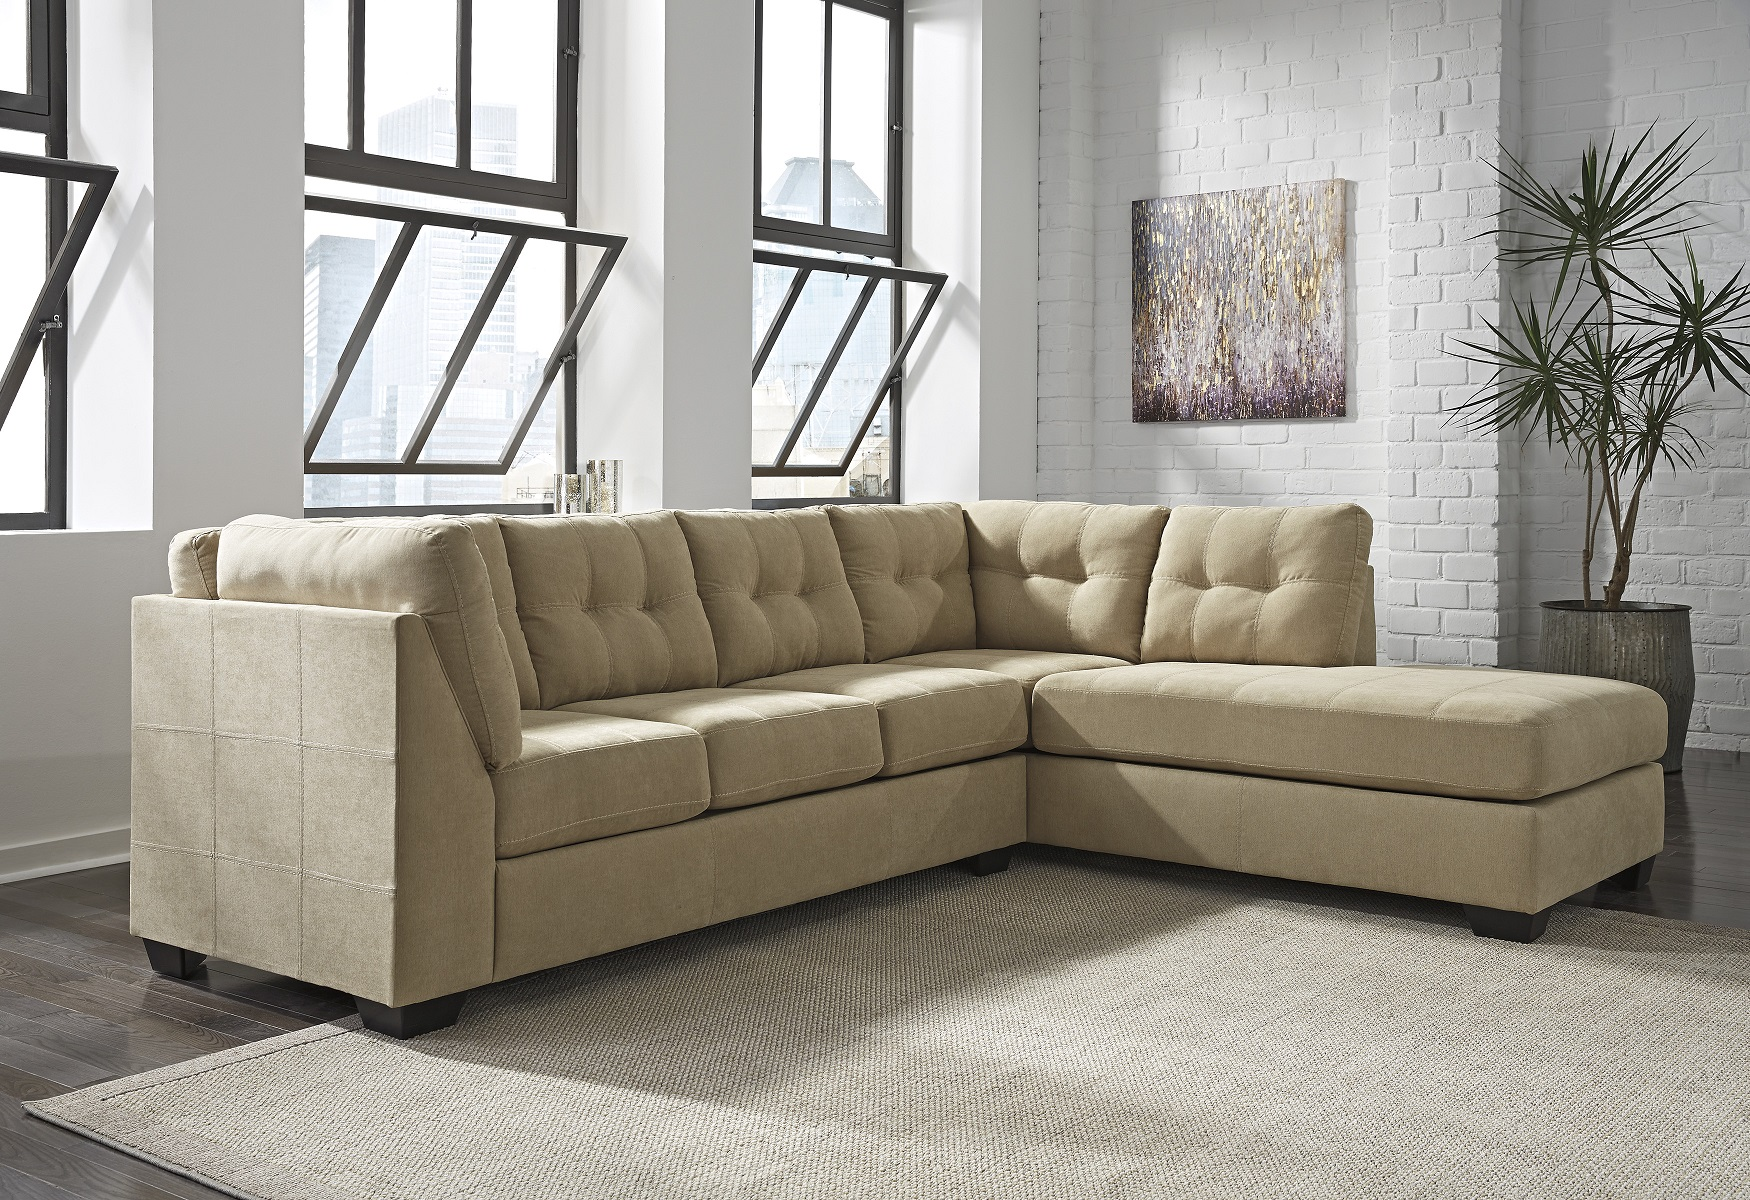 Ashley Sectional Sofa Splendid Ashley Furniture Sectional